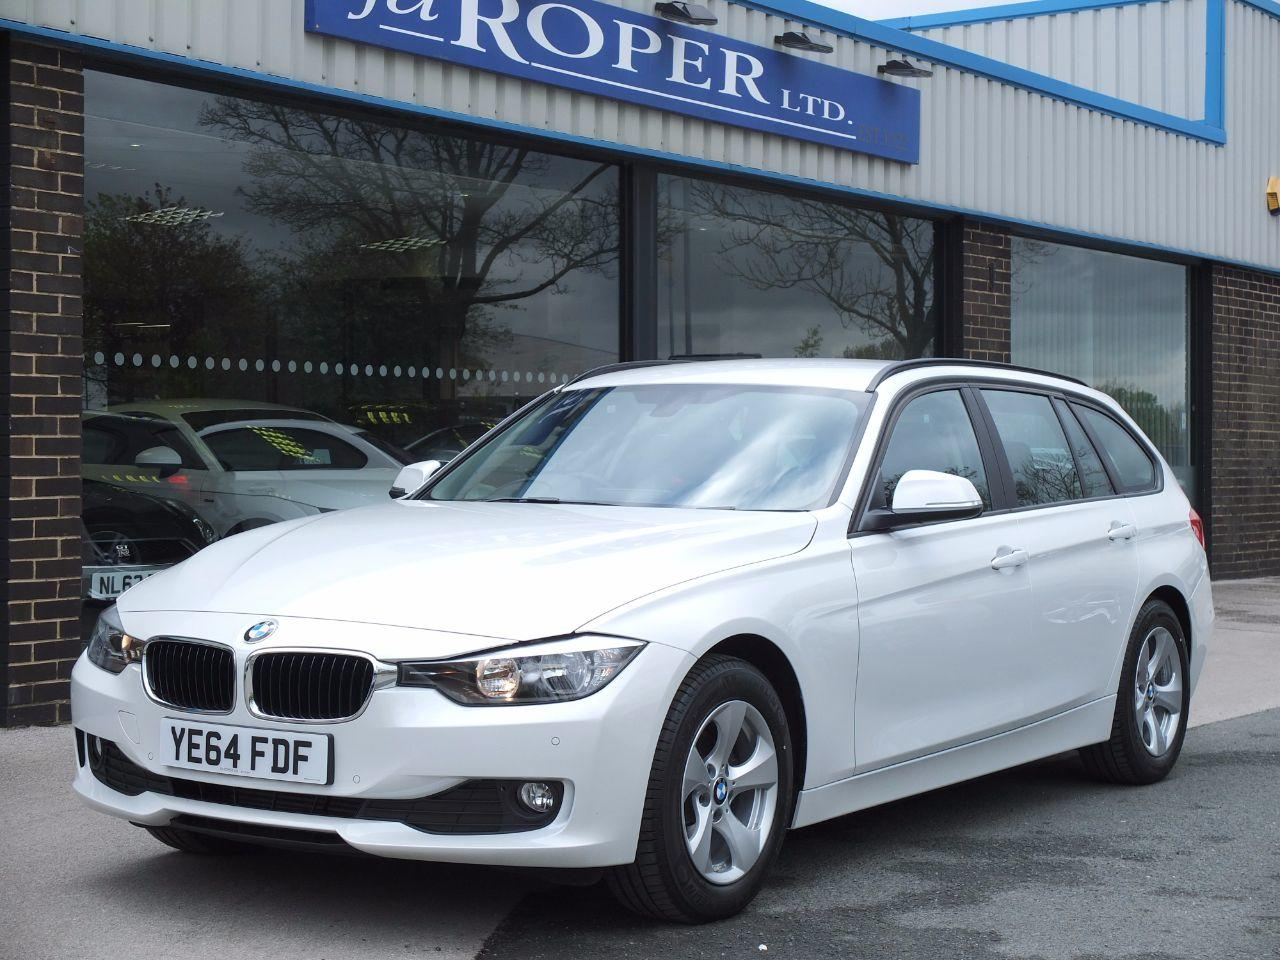 BMW 3 Series 2.0 320d EfficientDynamics Touring Auto Media Pack Estate Diesel Mineral White MetallicBMW 3 Series 2.0 320d EfficientDynamics Touring Auto Media Pack Estate Diesel Mineral White Metallic at fa Roper Ltd Bradford